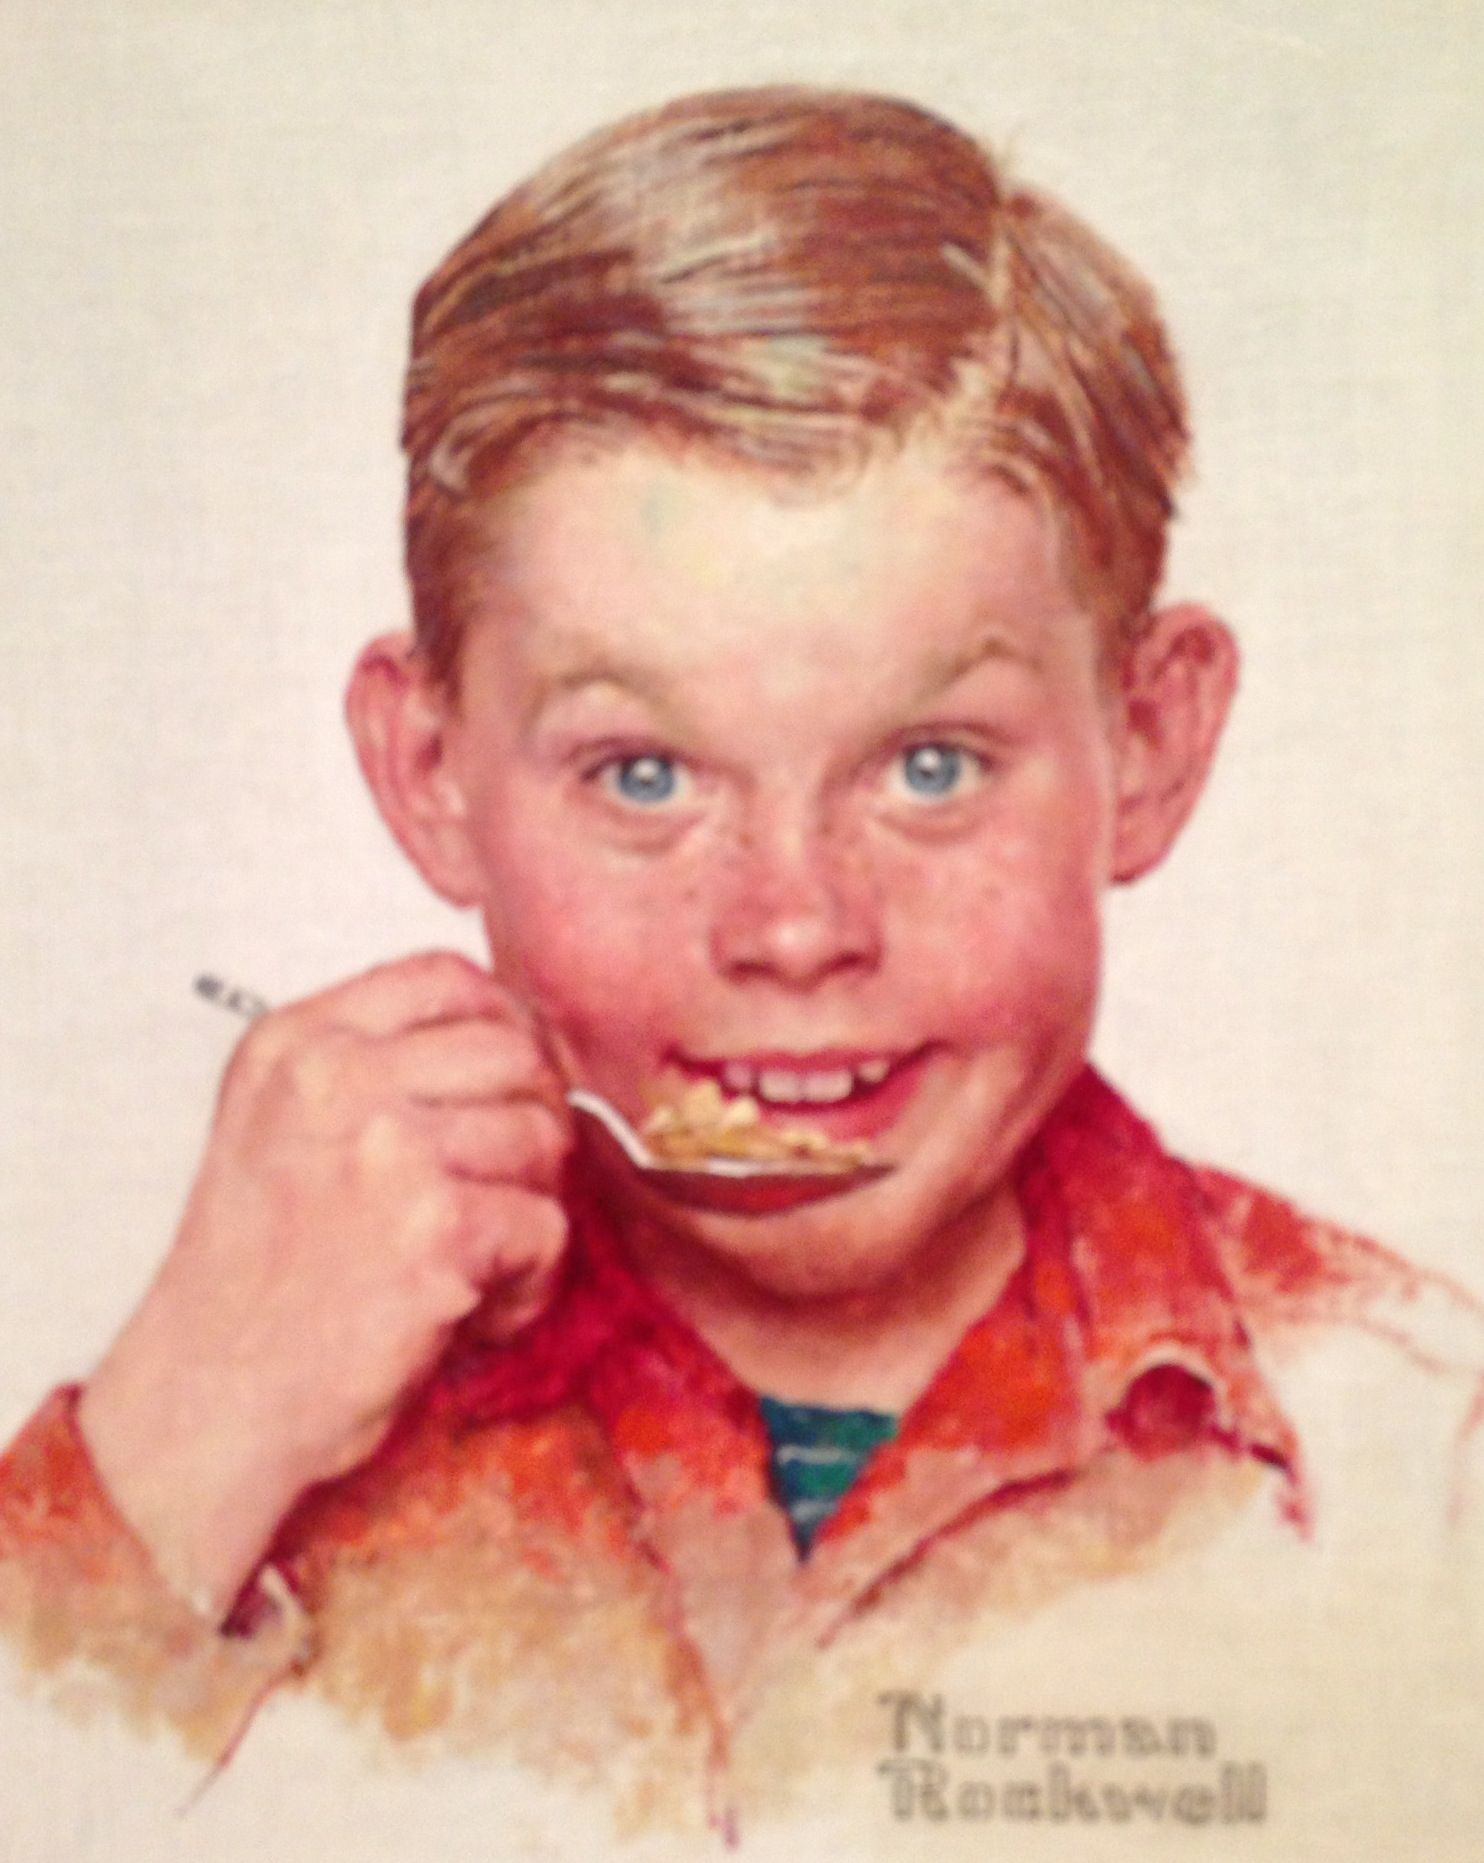 Norman Rockwell 1894 1978 Freckles Kellogg Company